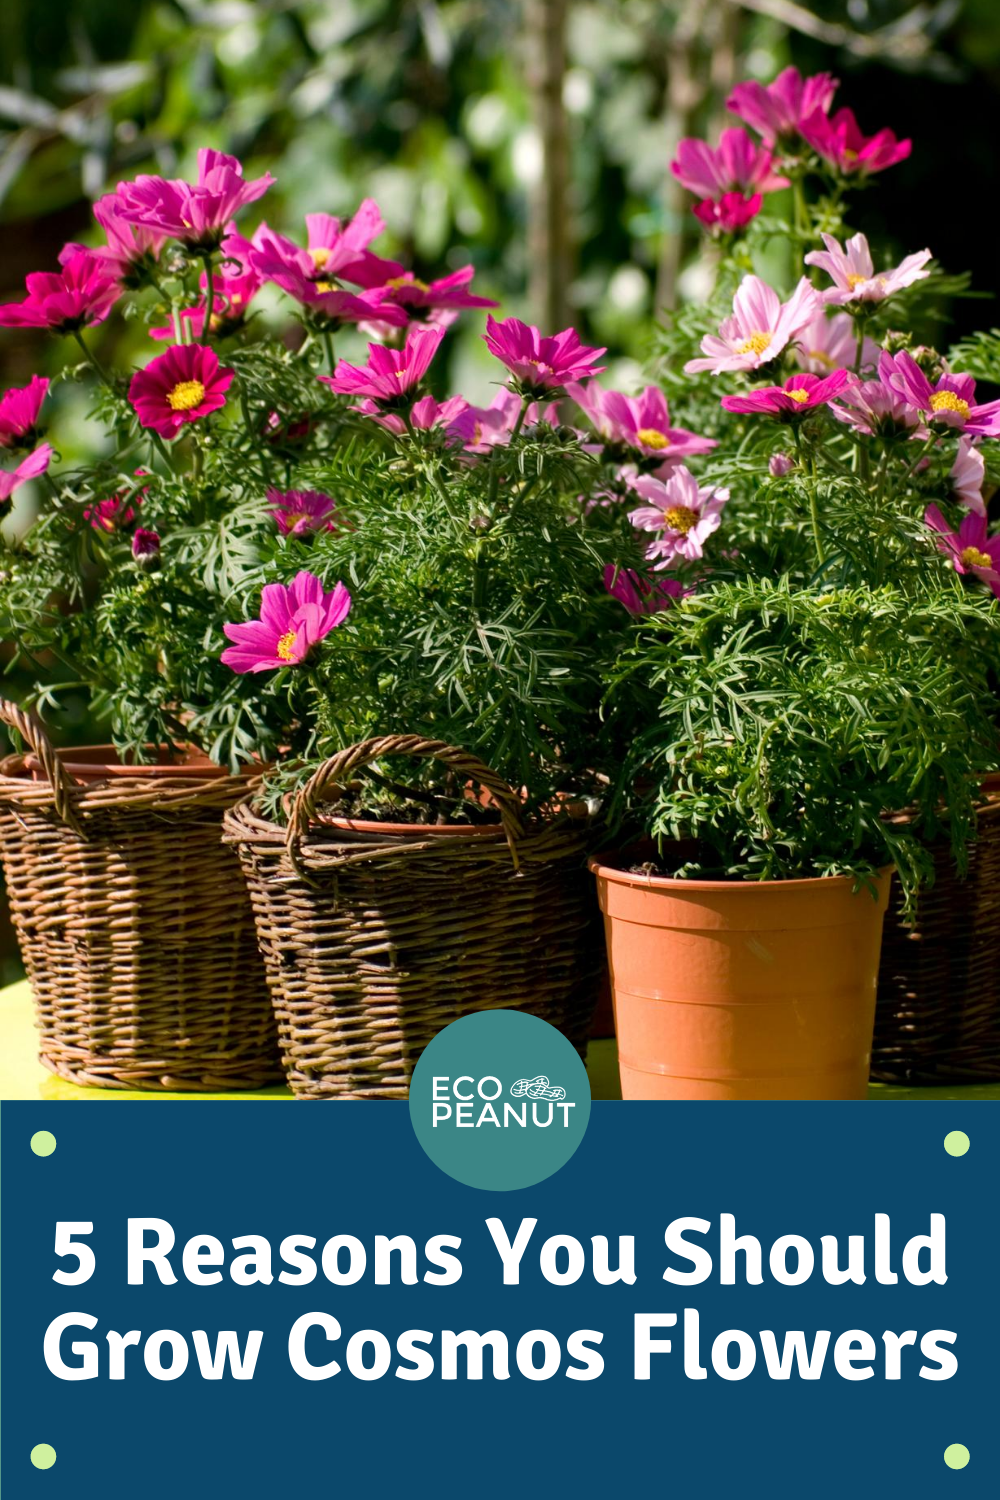 5 Reasons You Should Grow Cosmos Flowers Tips Guaranteed To Inspire Eco Peanut In 2020 Cosmos Flowers Flowers Plant Species